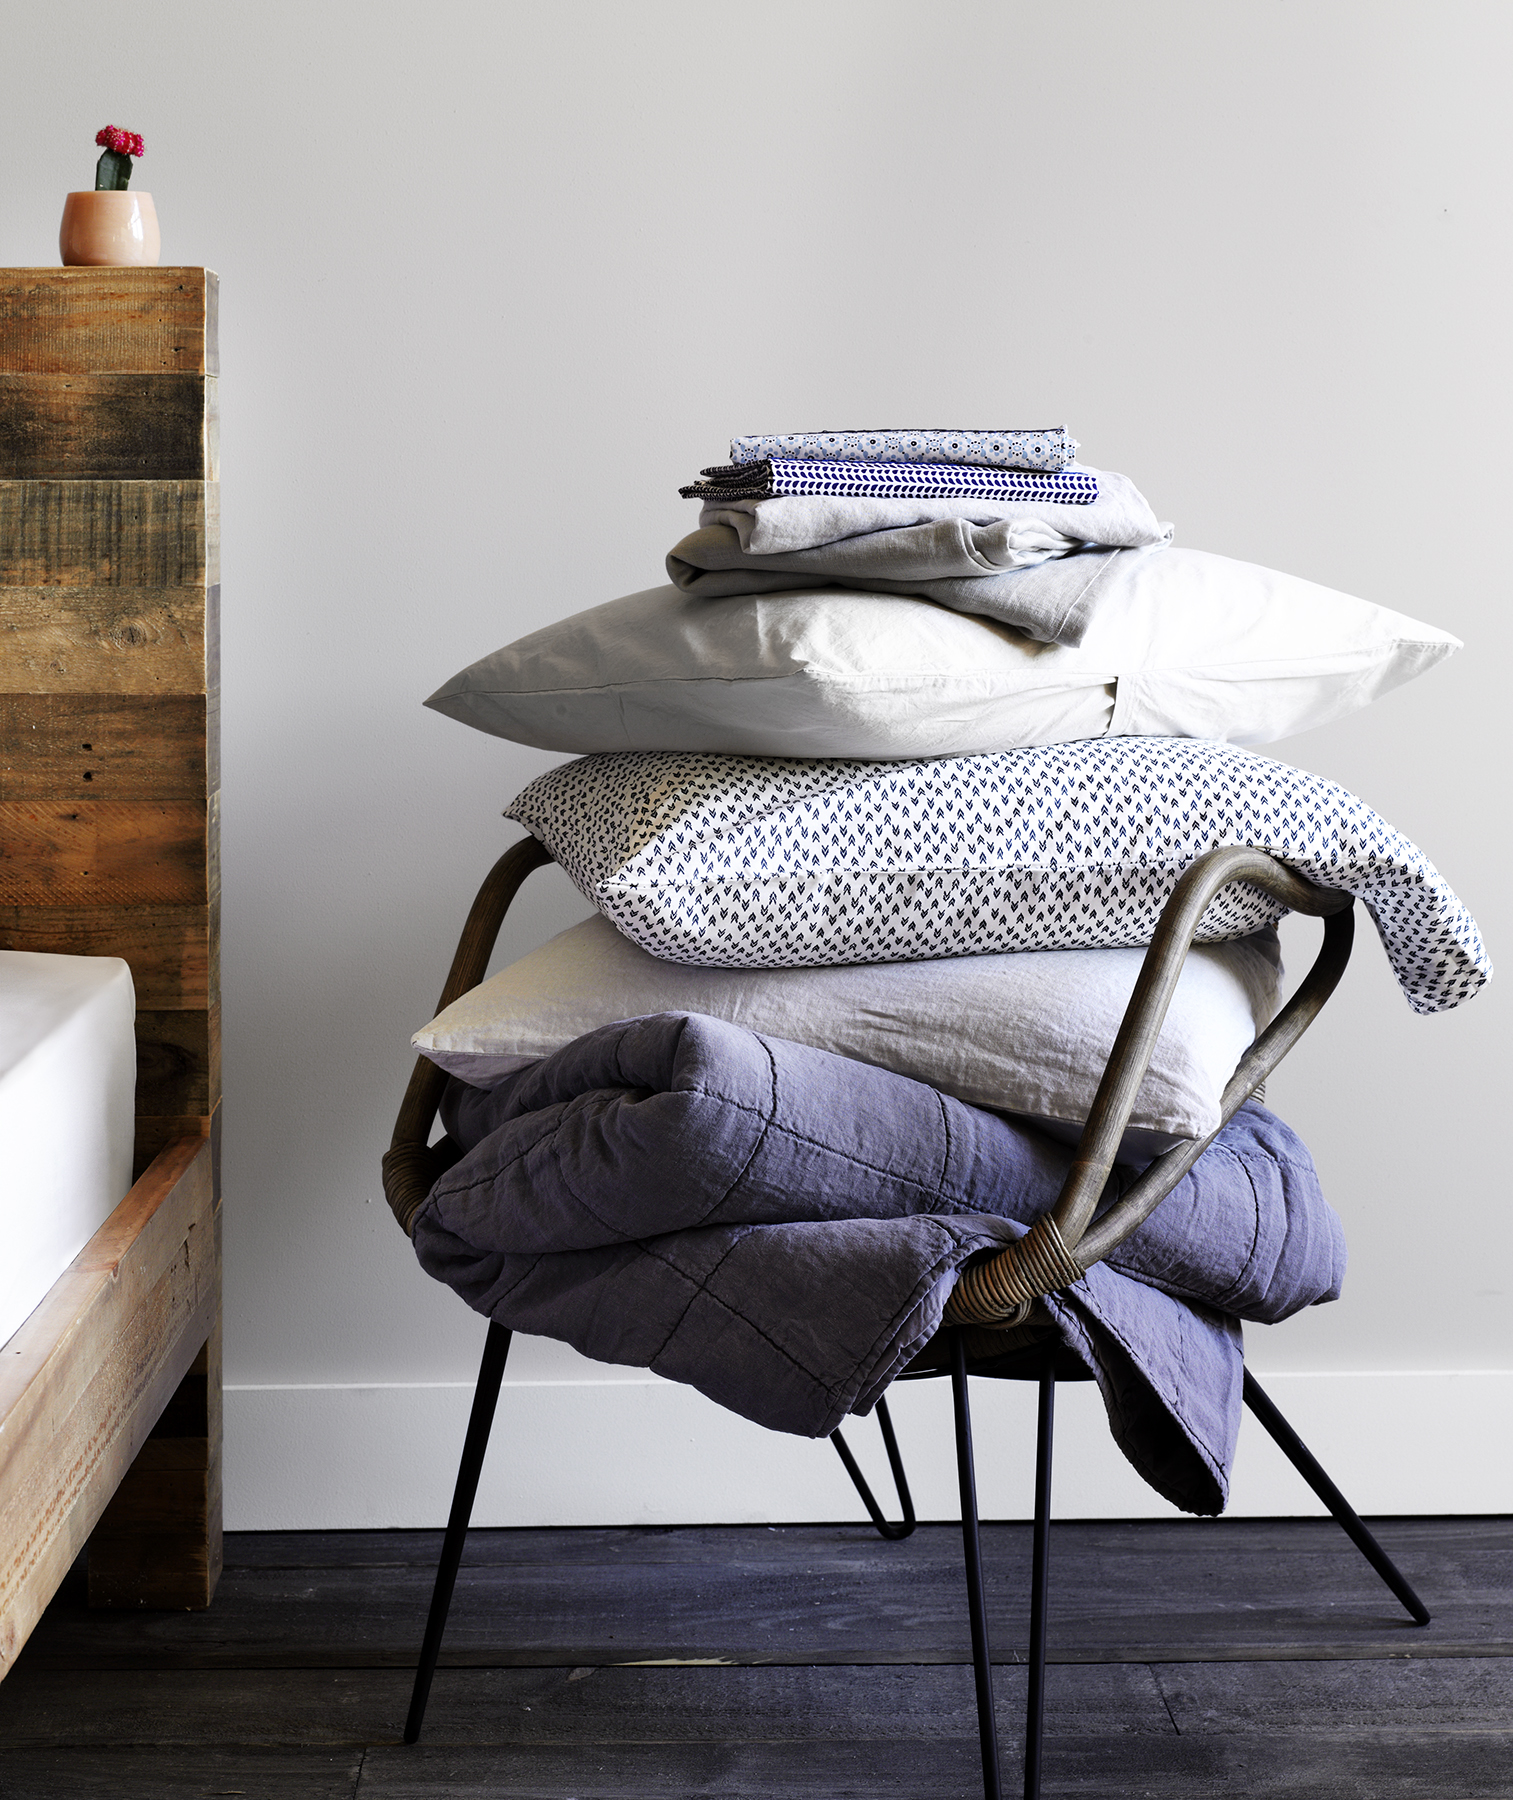 Chair stacked with blue and white bed linens